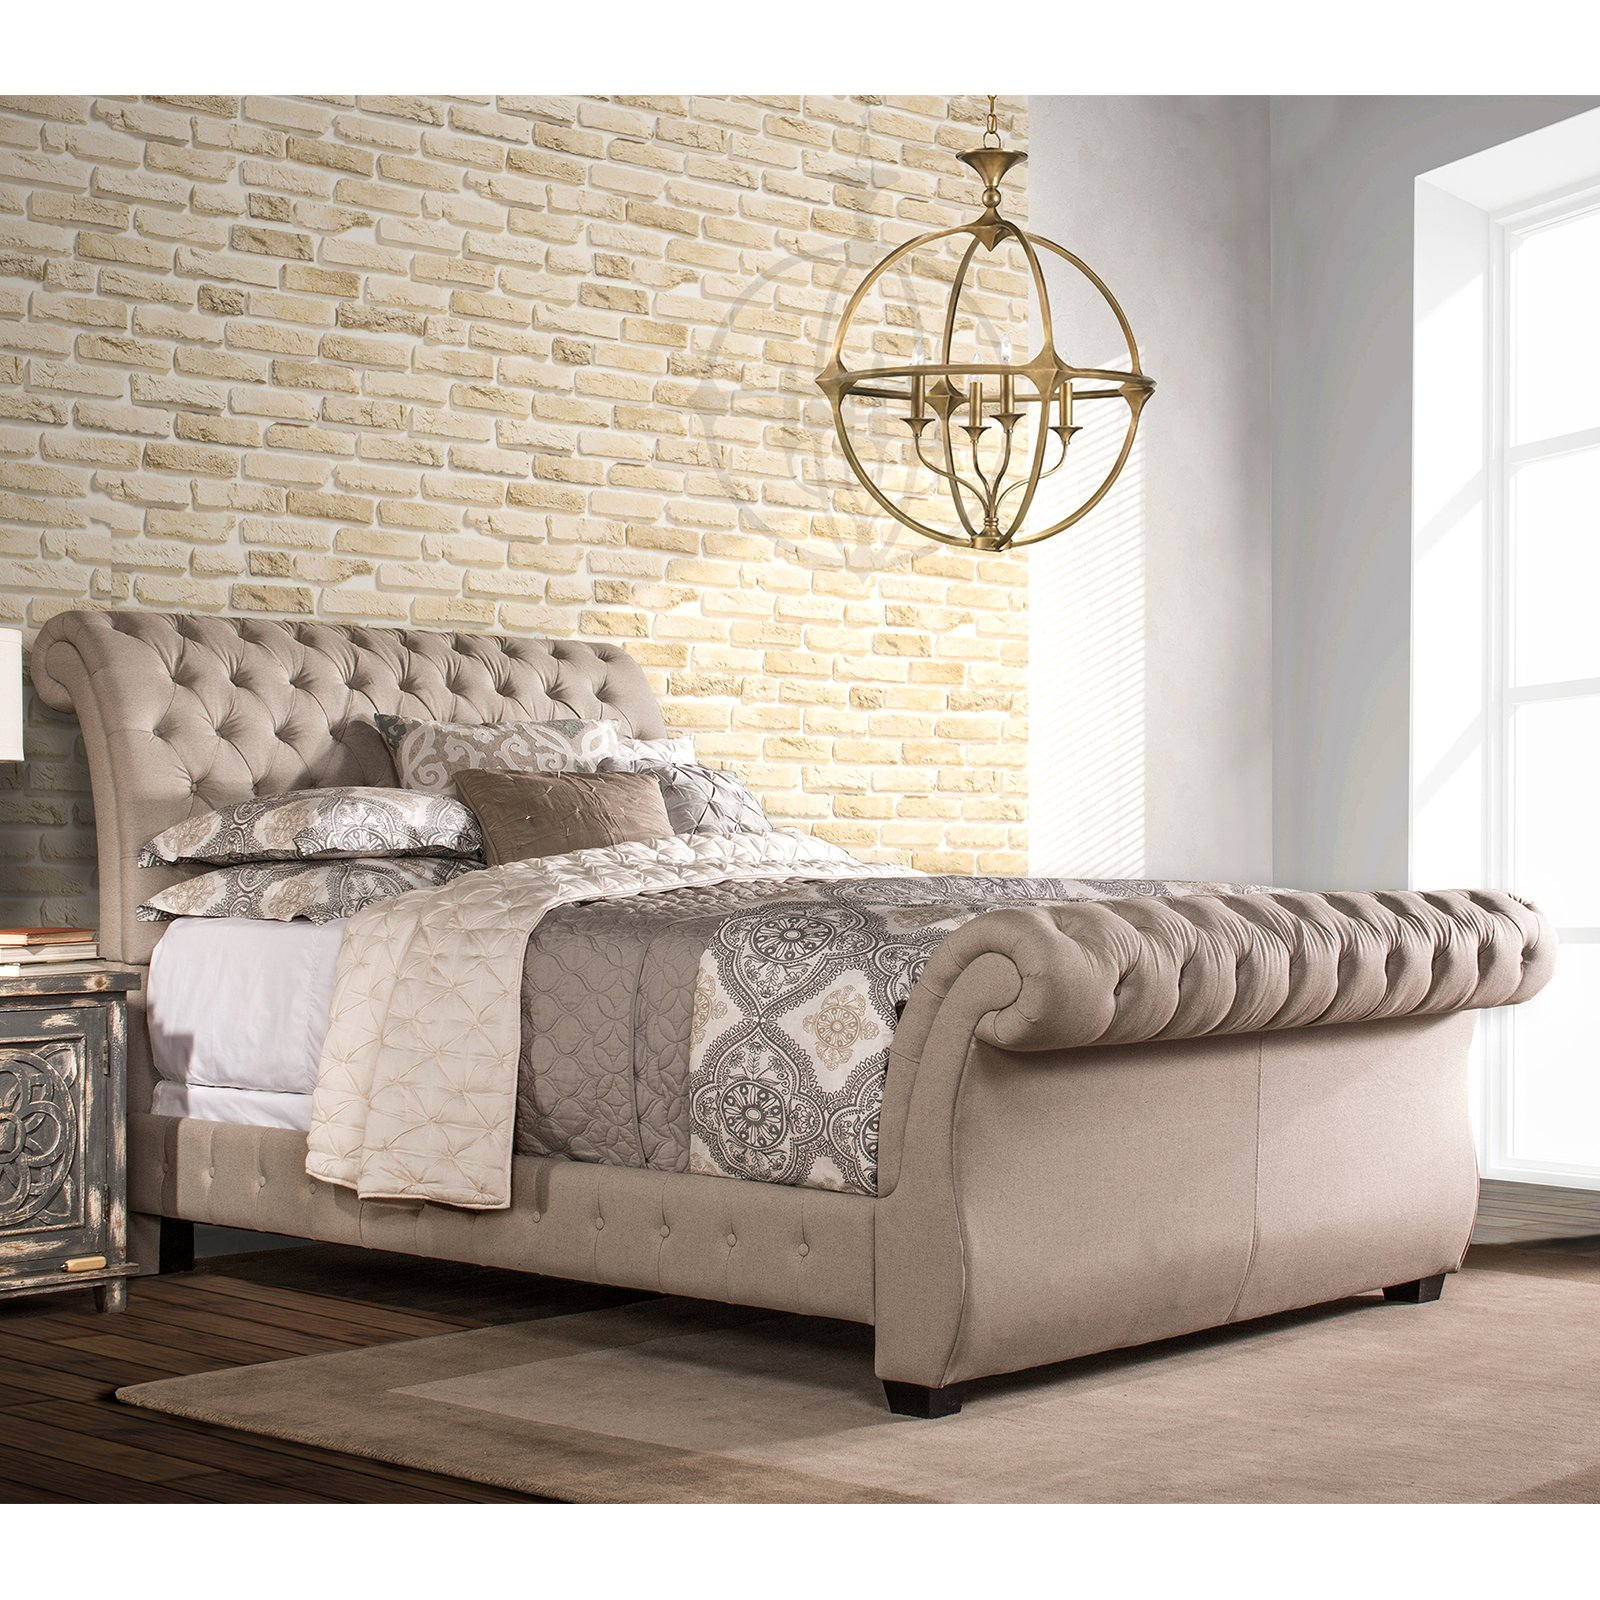 Bed Linen Hillsdale Furniture Bombay King Bed Linen Stone